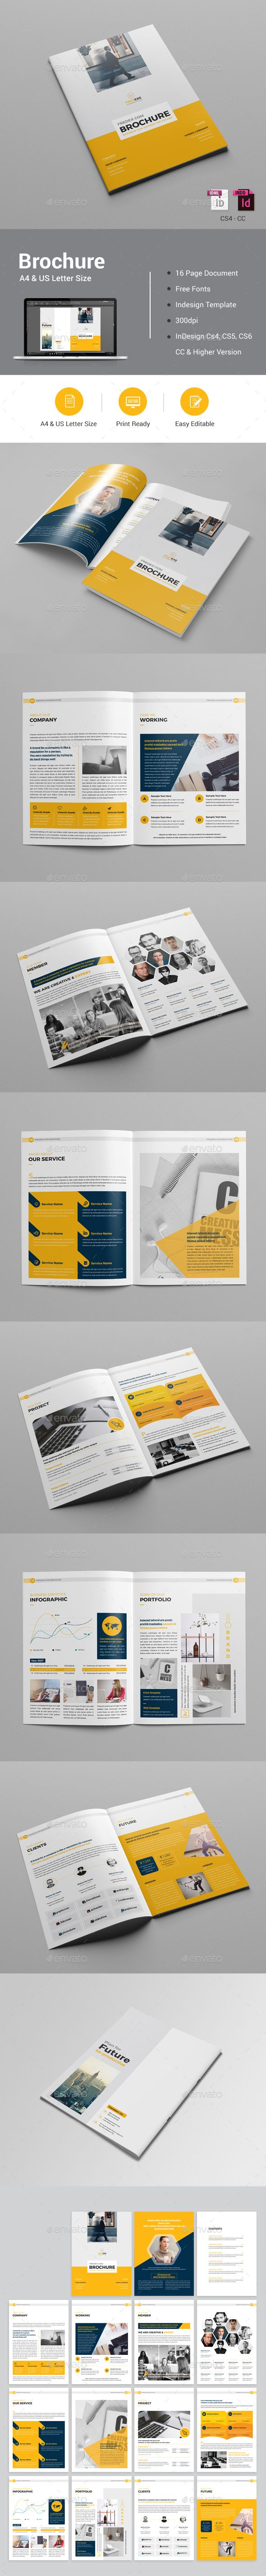 Brochure Template InDesign INDD - 16 Pages, A4 & US Letter Size #design